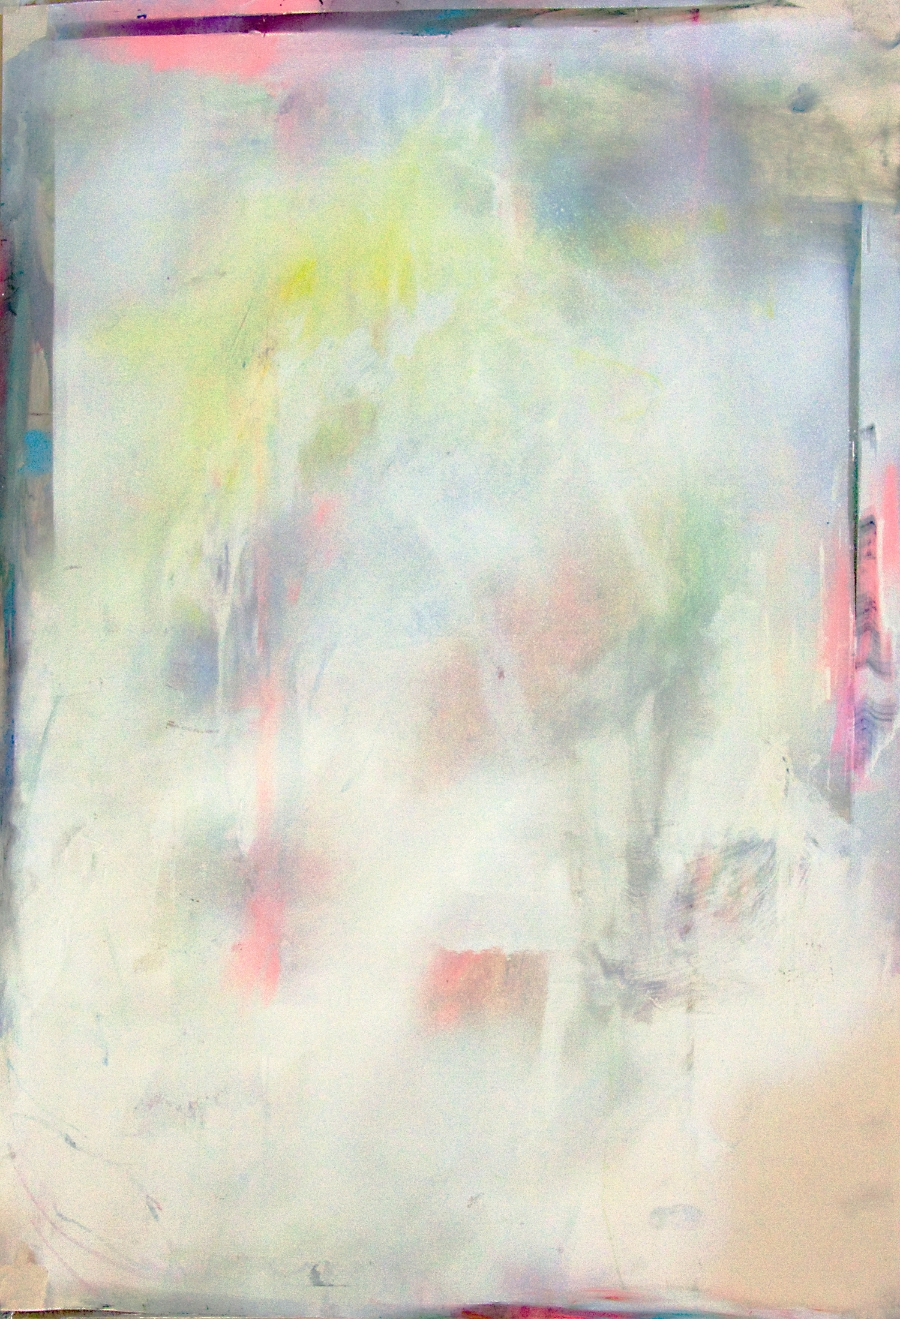 Bruno Albizzati Untitled (combustible), 2013 Pastels and acrylic on paper 94 x 64 cm